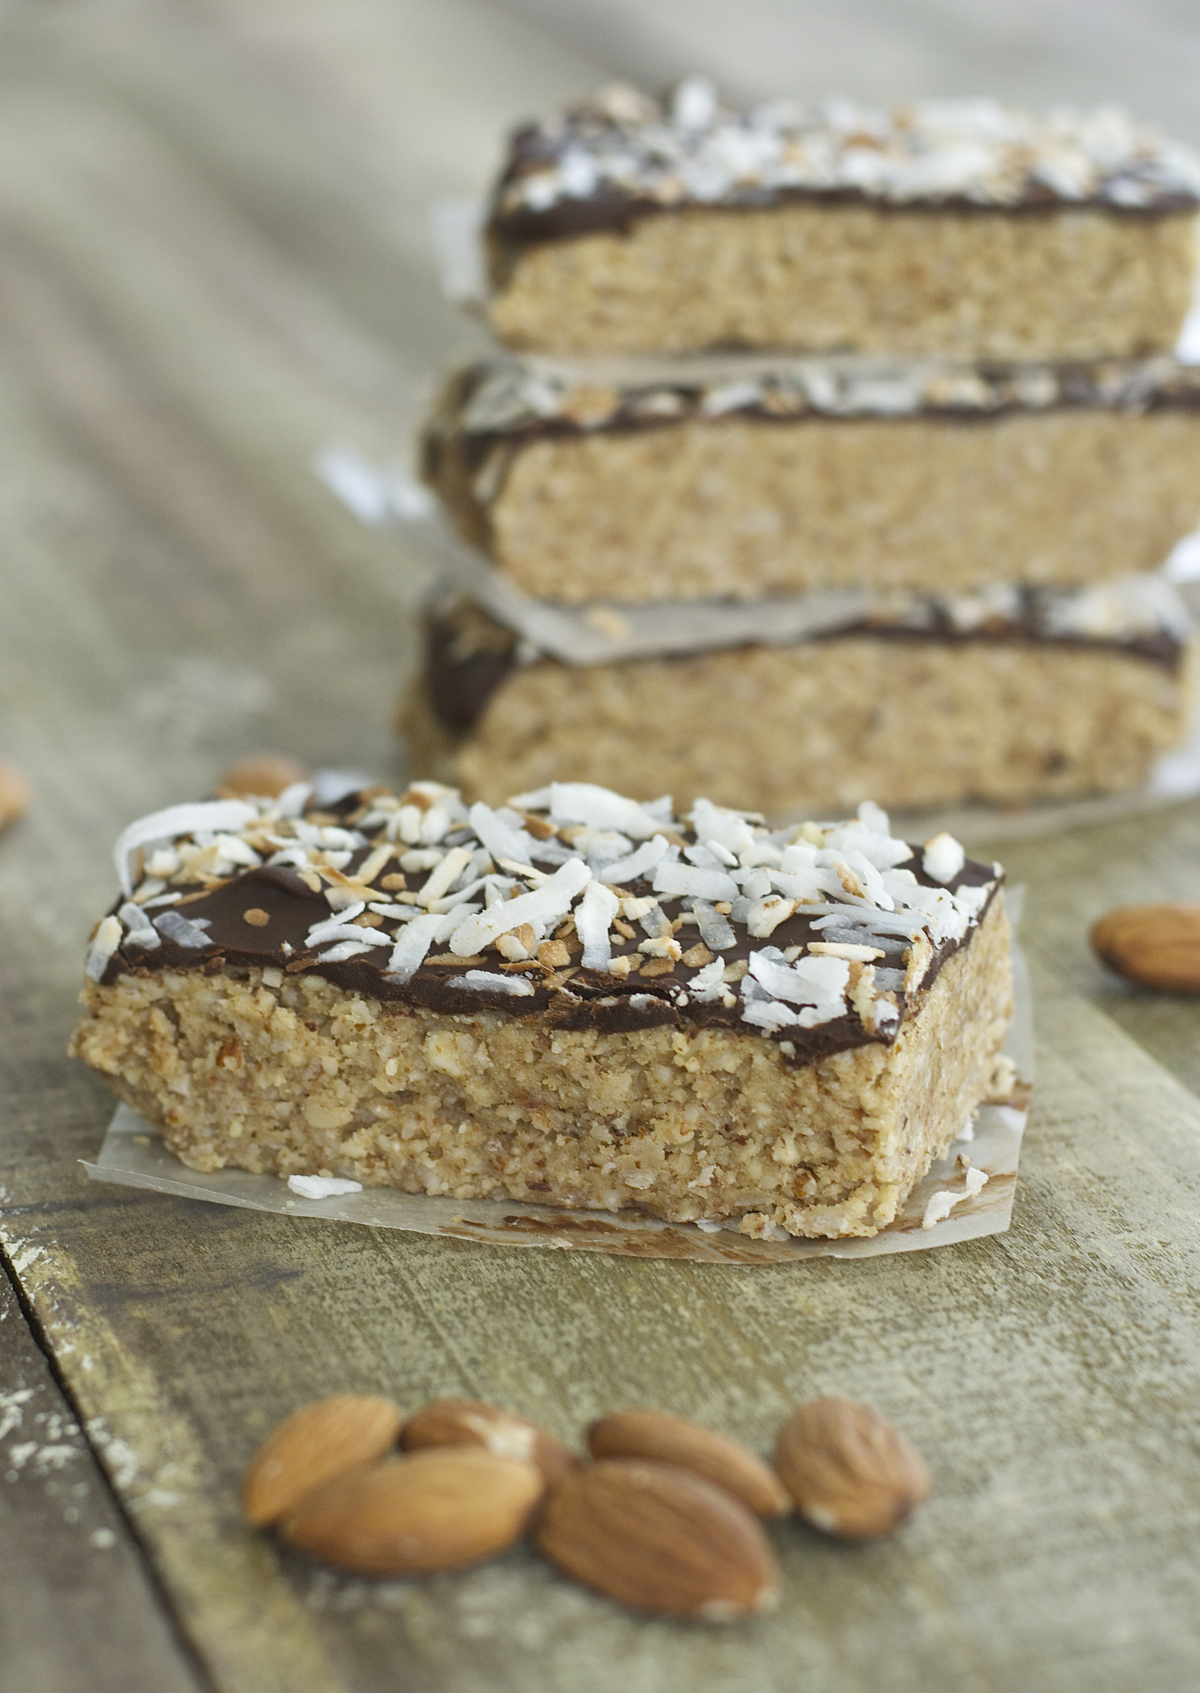 These five ingredient No Bake Toasted Coconut and Almond Granola Bars are super simple to make! These gluten free, paleo friendly snacks will be your new favorite!